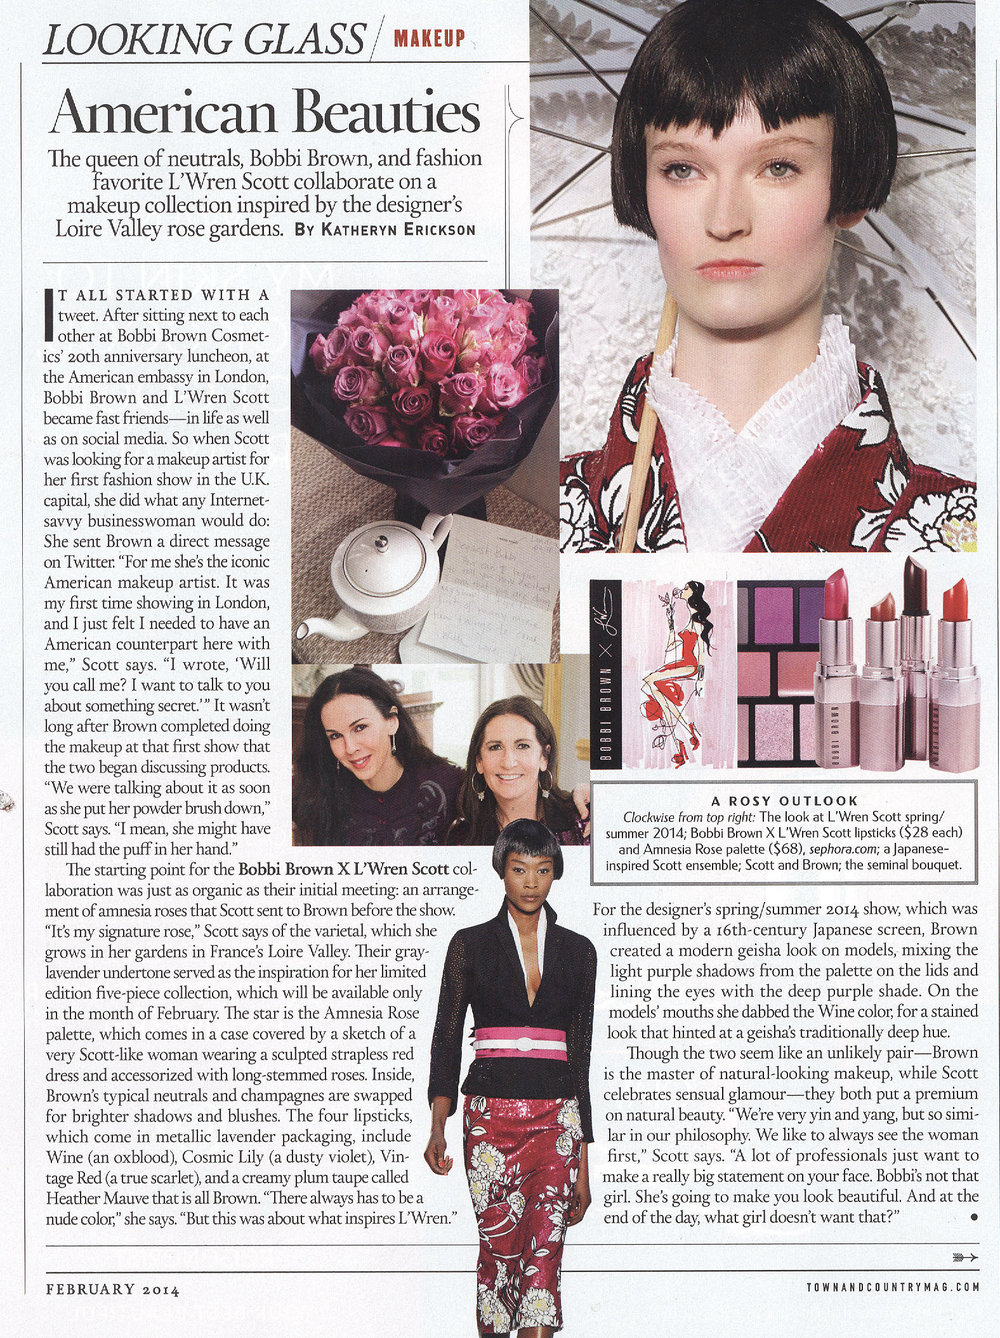 Town and Country - L'Wren Scott Collaboration Feb 2014.jpg